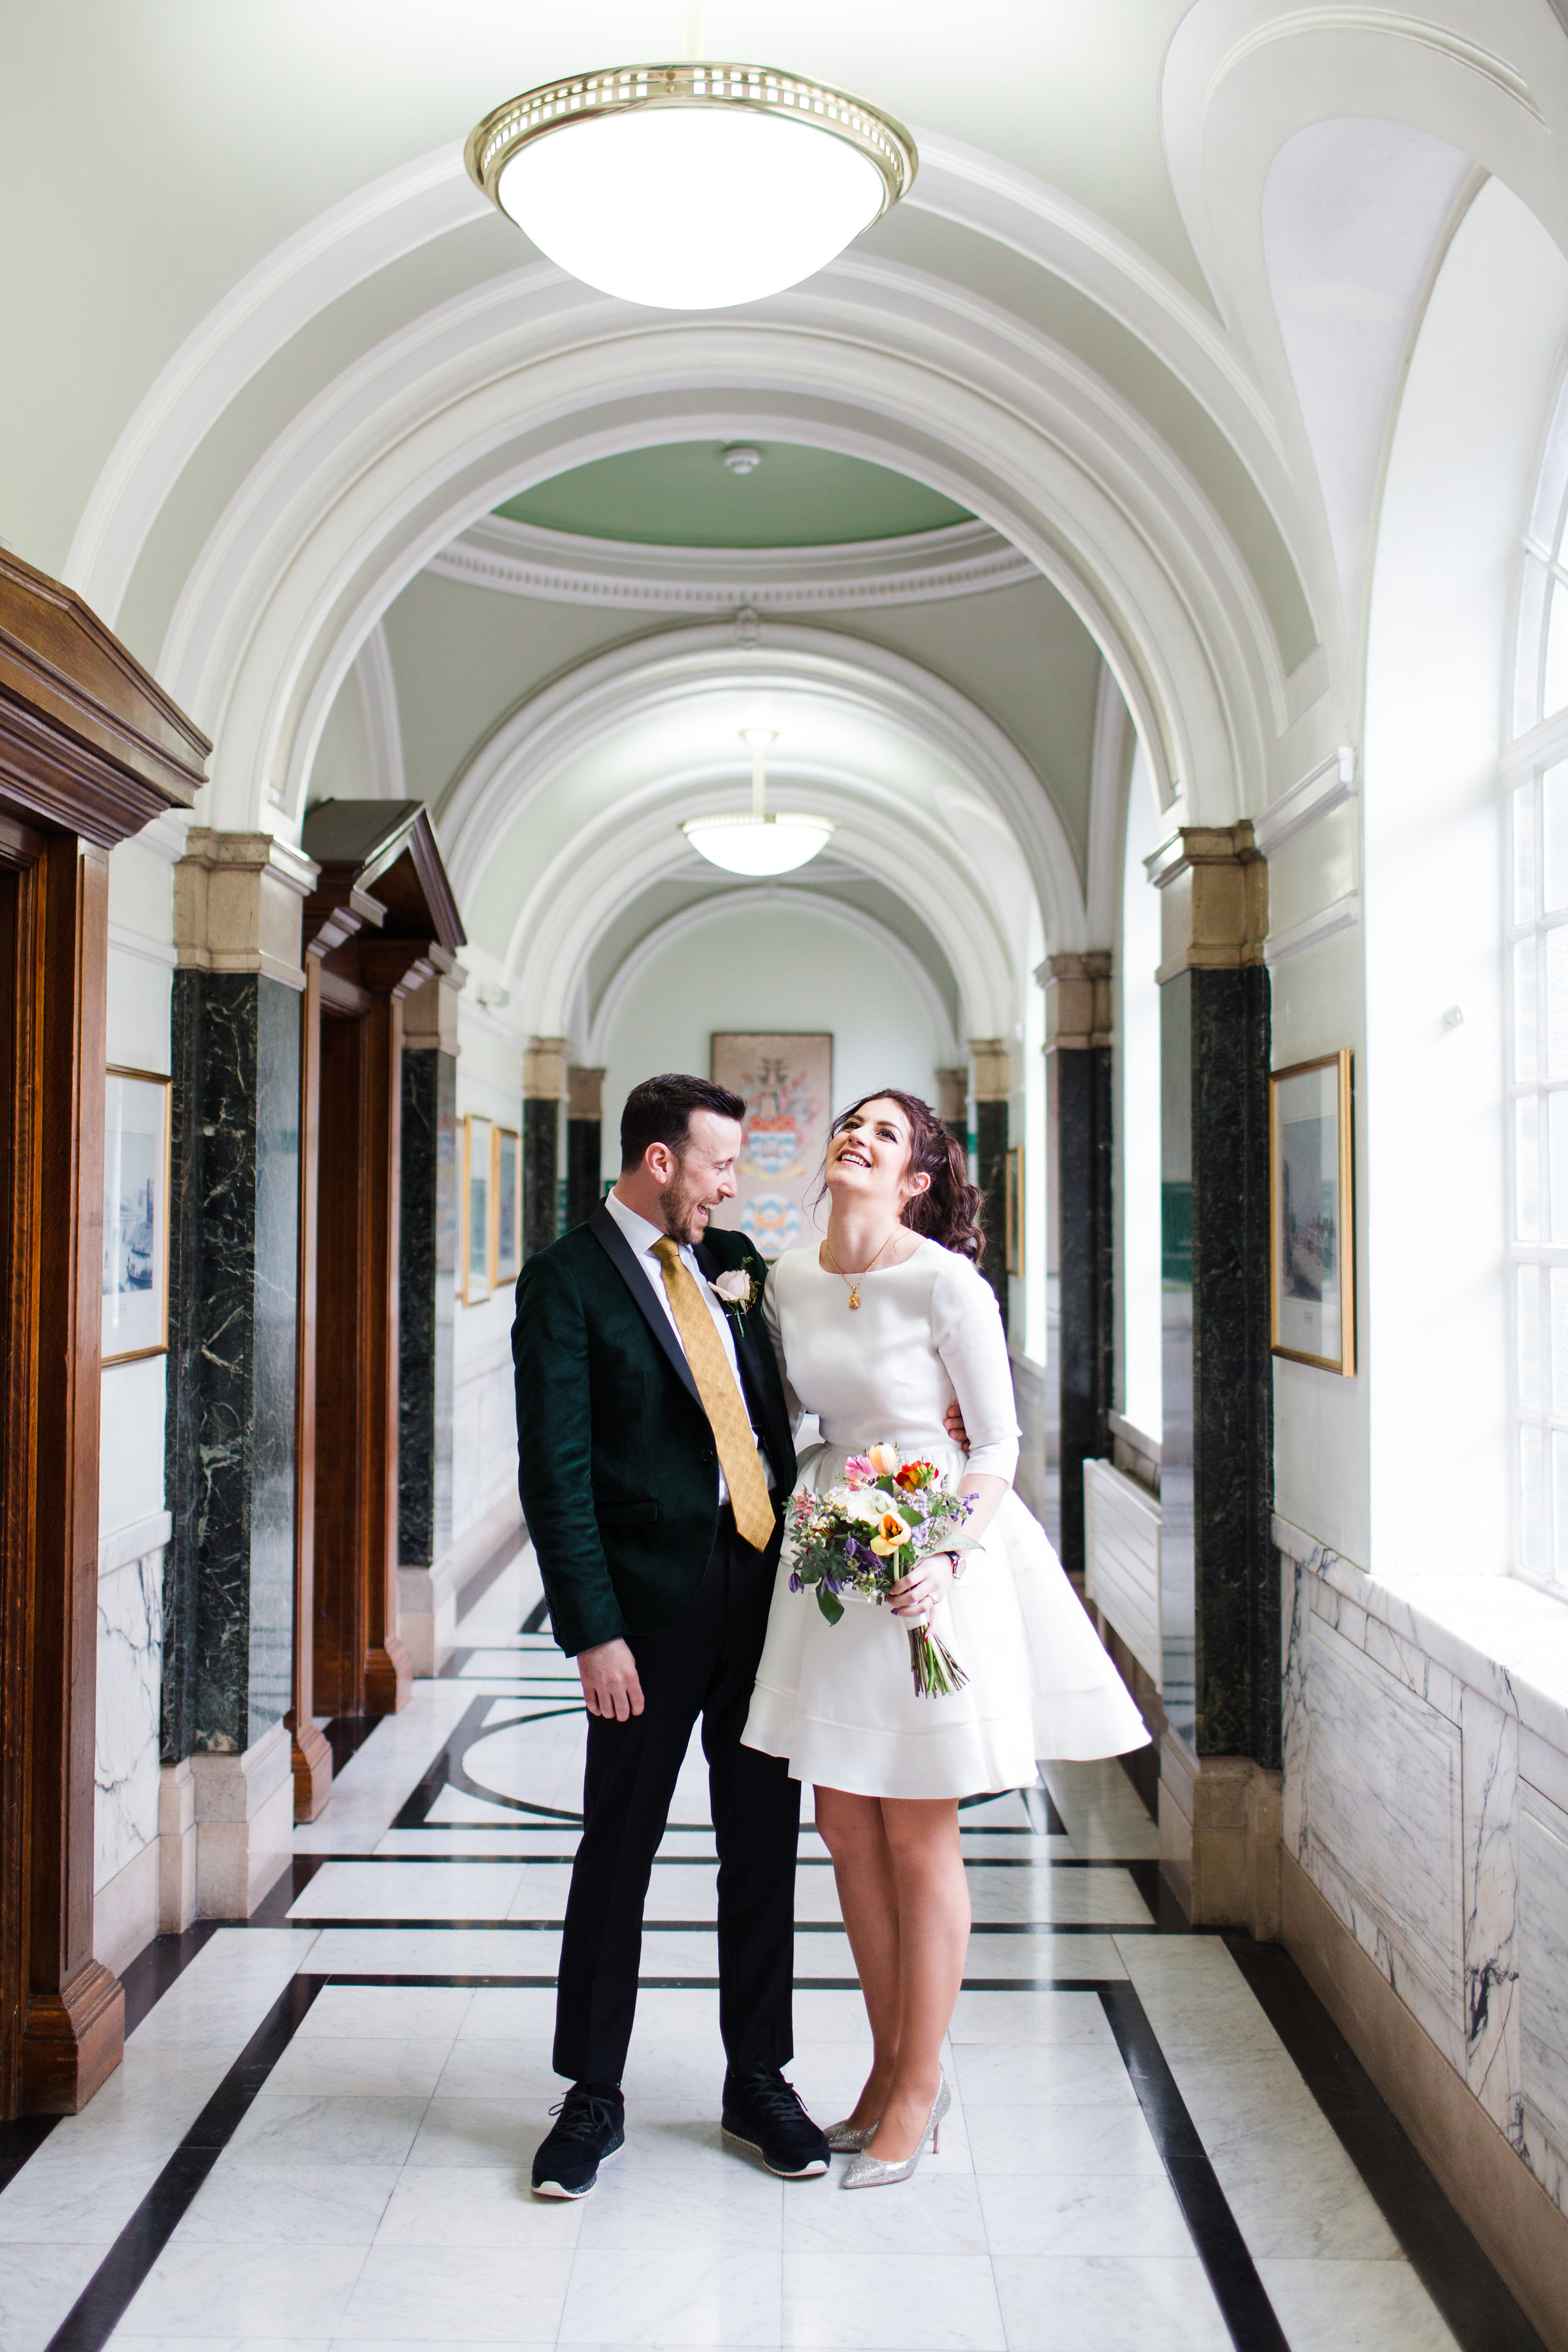 Islington Town Hall Wedding, London